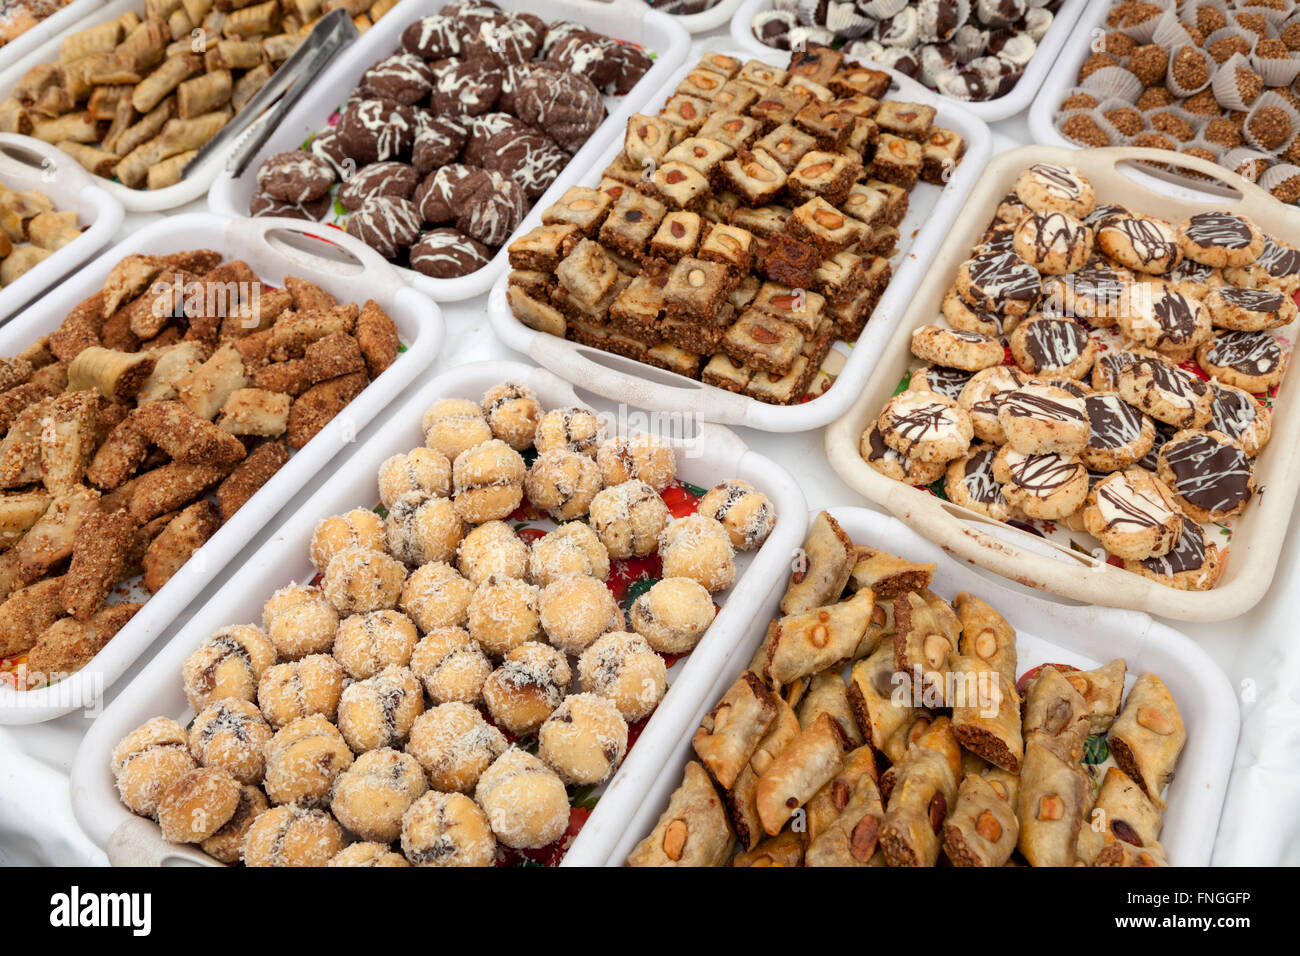 Moroccan cookies at the bakery in Marrakesh, Morocco - Stock Image